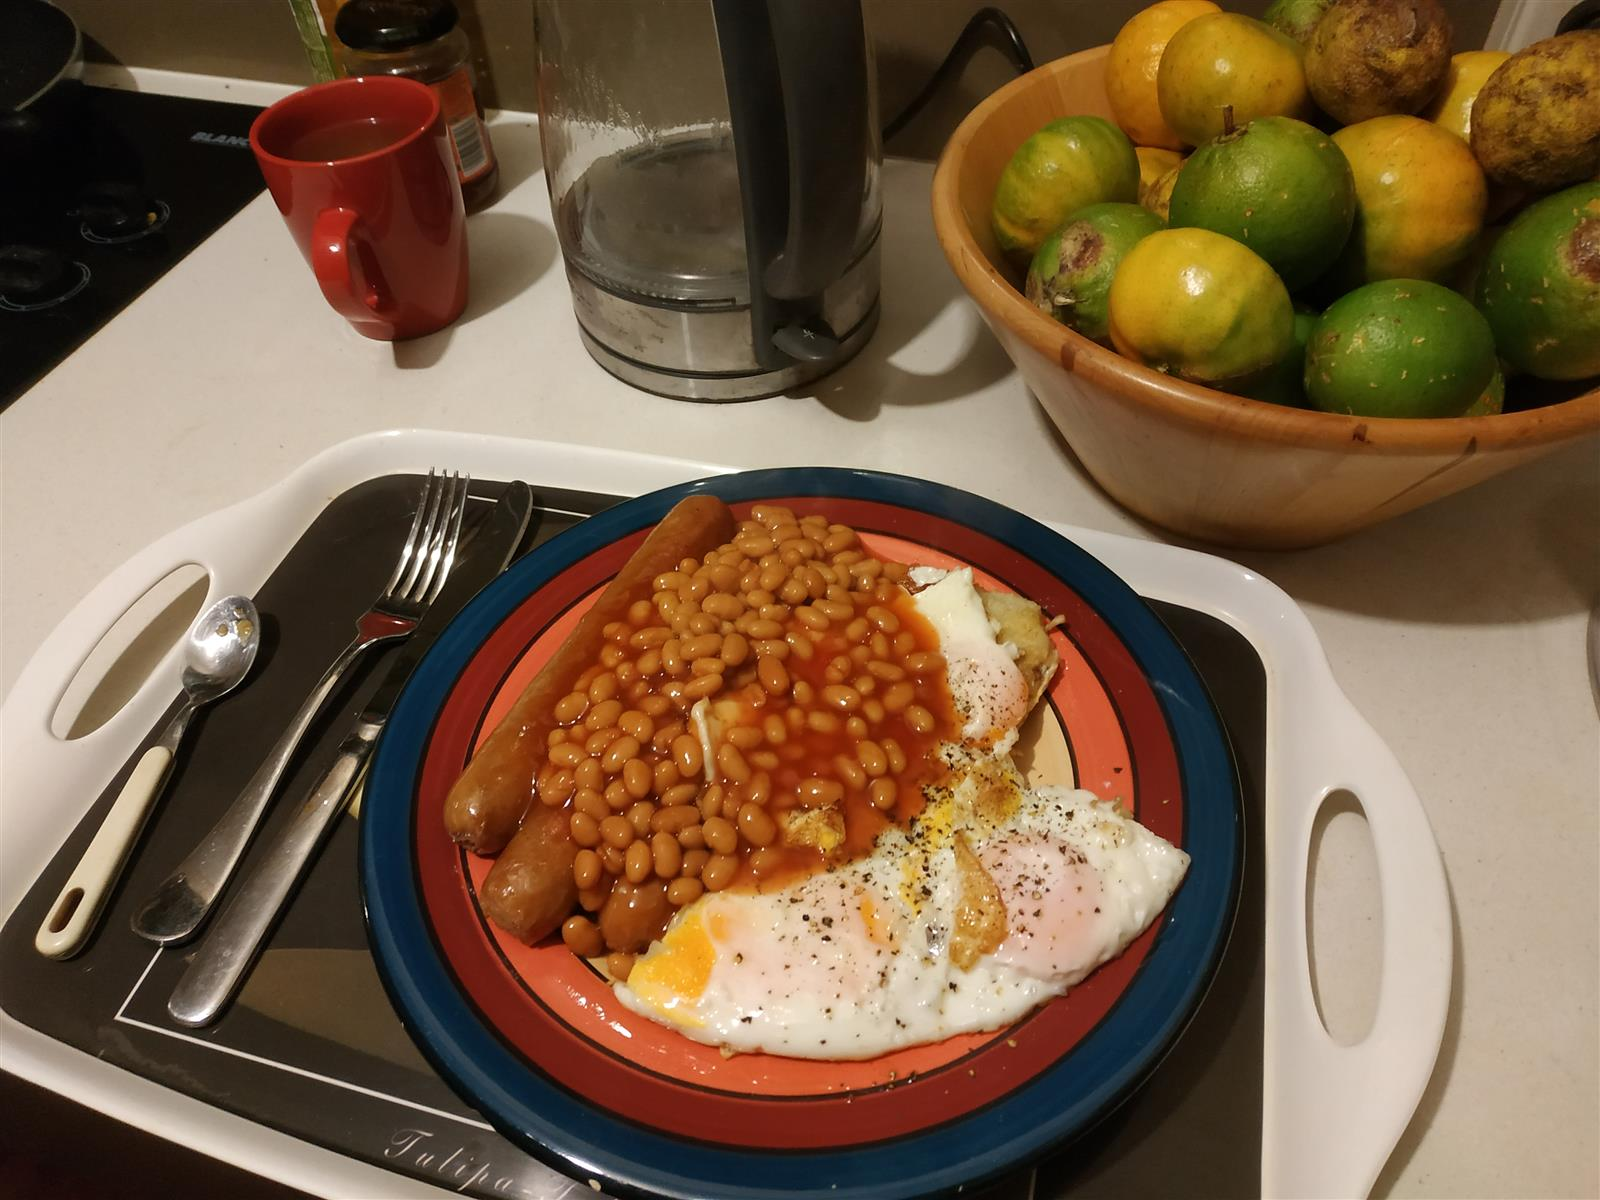 The Best Breakfast in the World Step by Step.: the Full English-img_20210602_222433-jpg